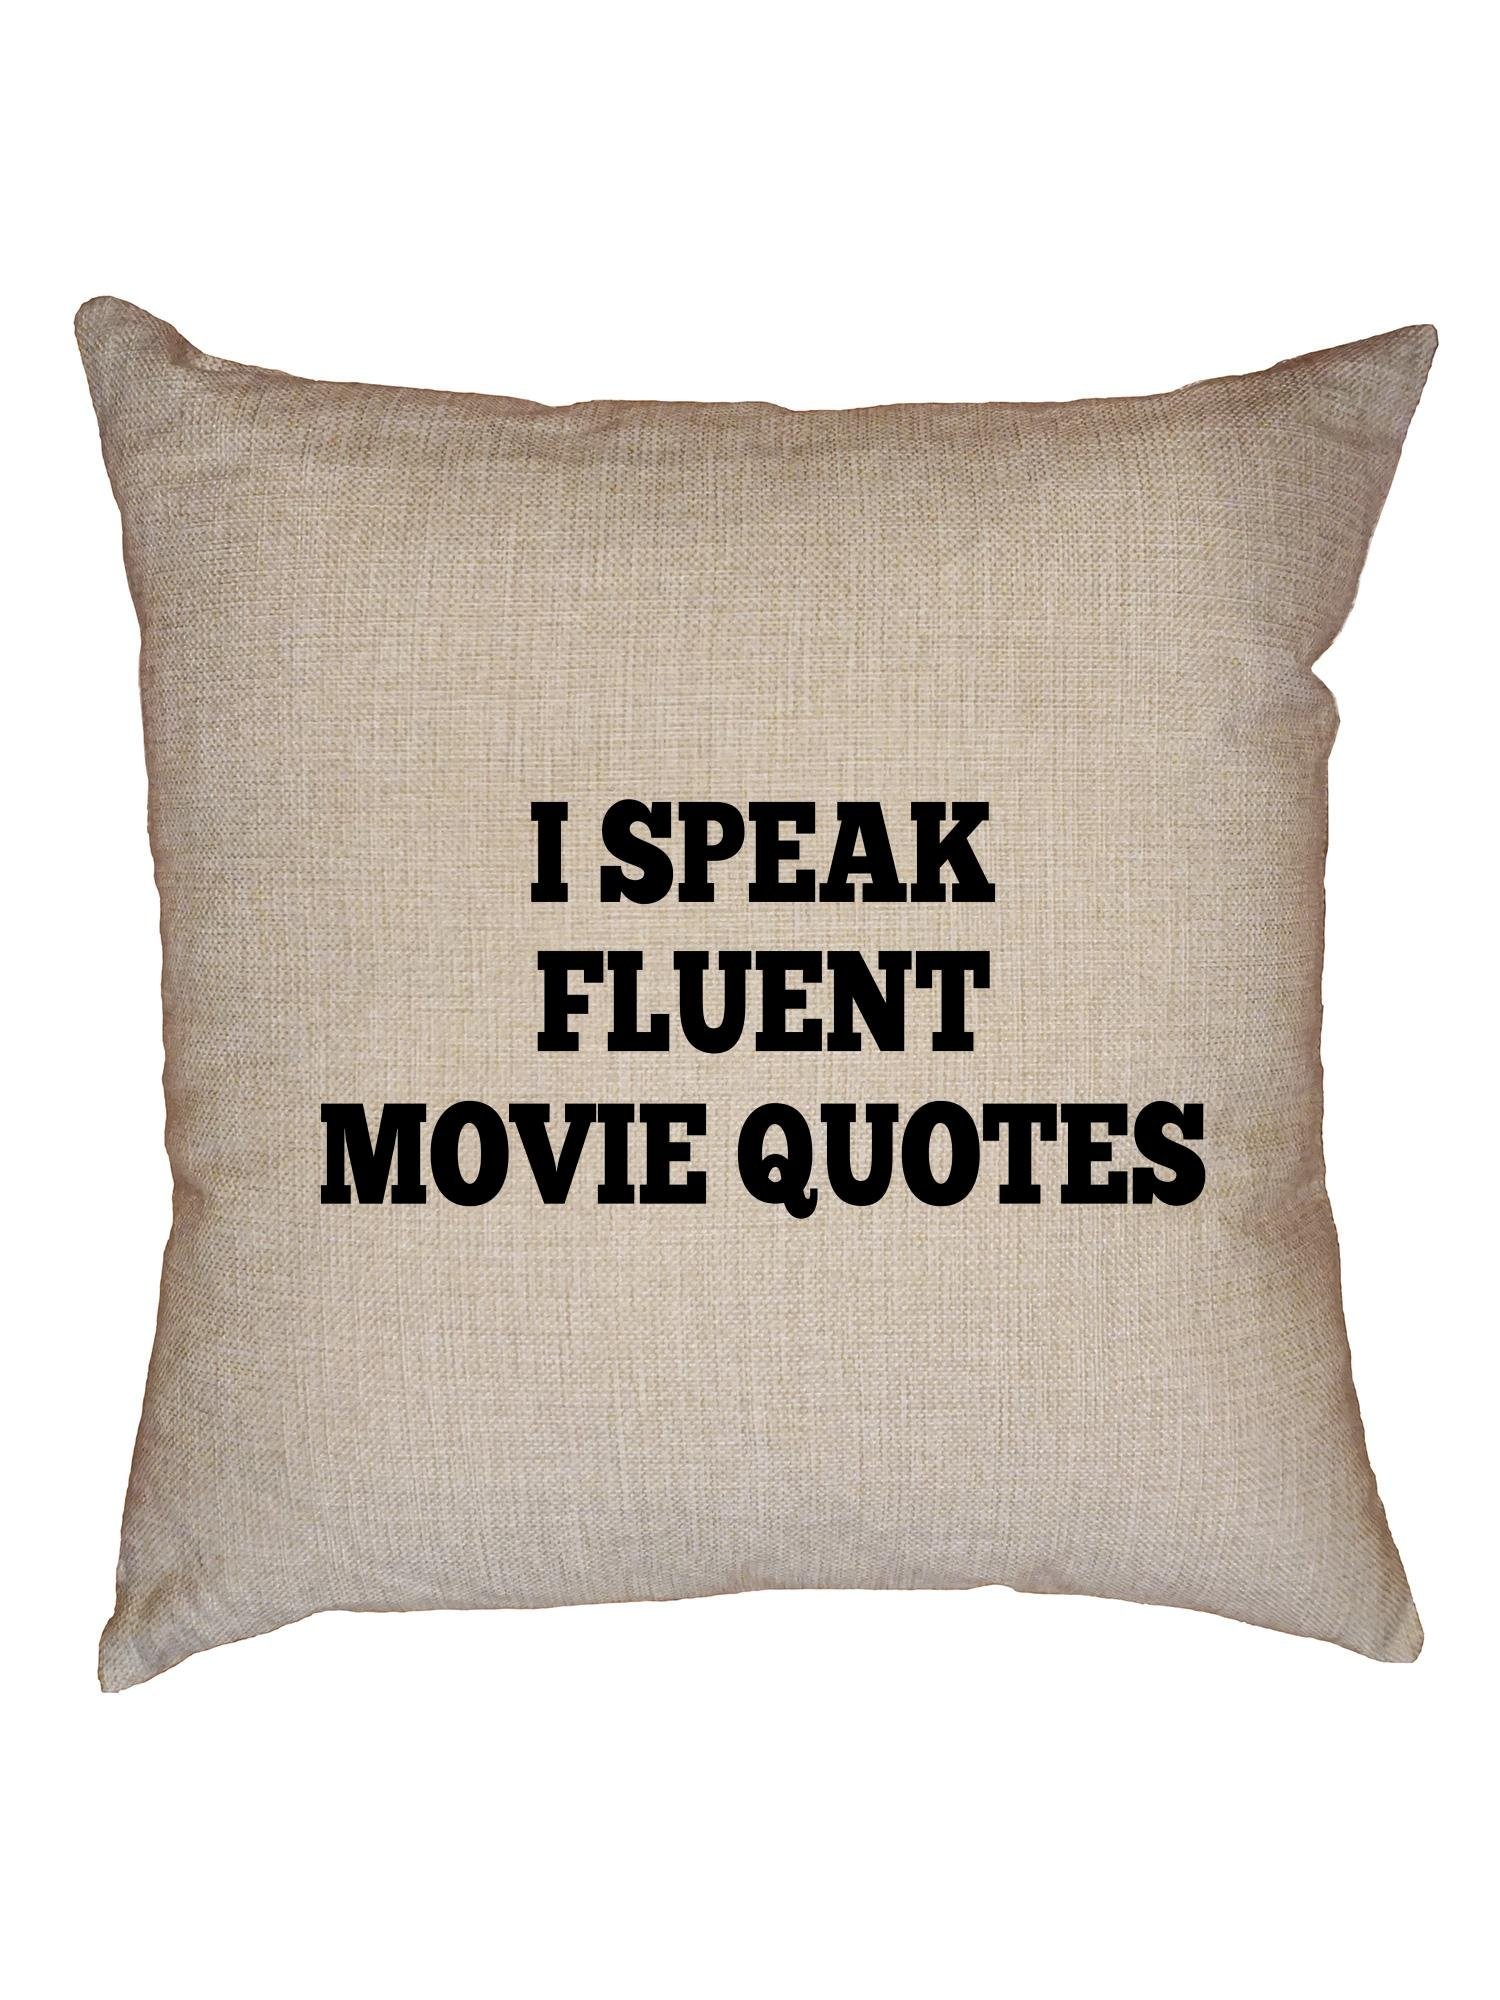 Hollywood Thread I Speak Fluent Movie Quotes Decorative Linen Throw Cushion Pillow Case with Insert